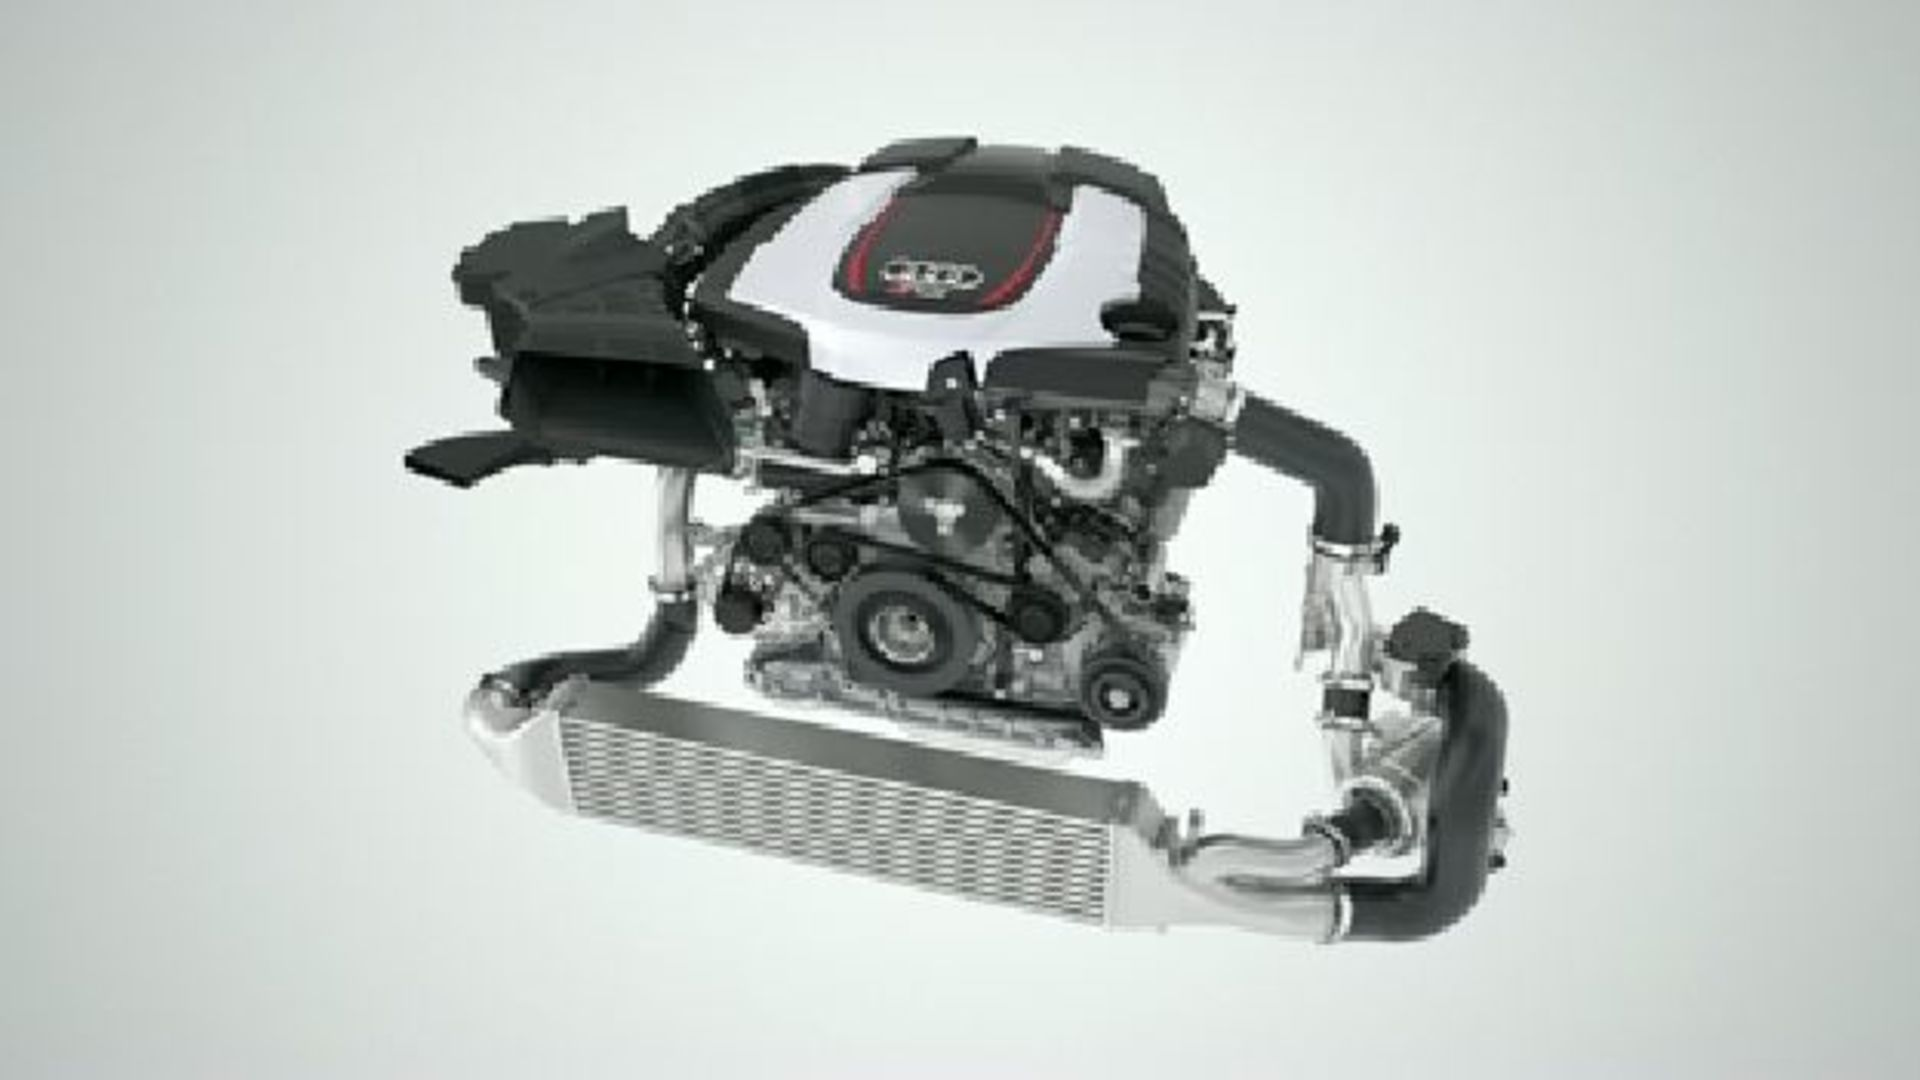 Audi V6 TDI Biturbo with electrically driven compressor